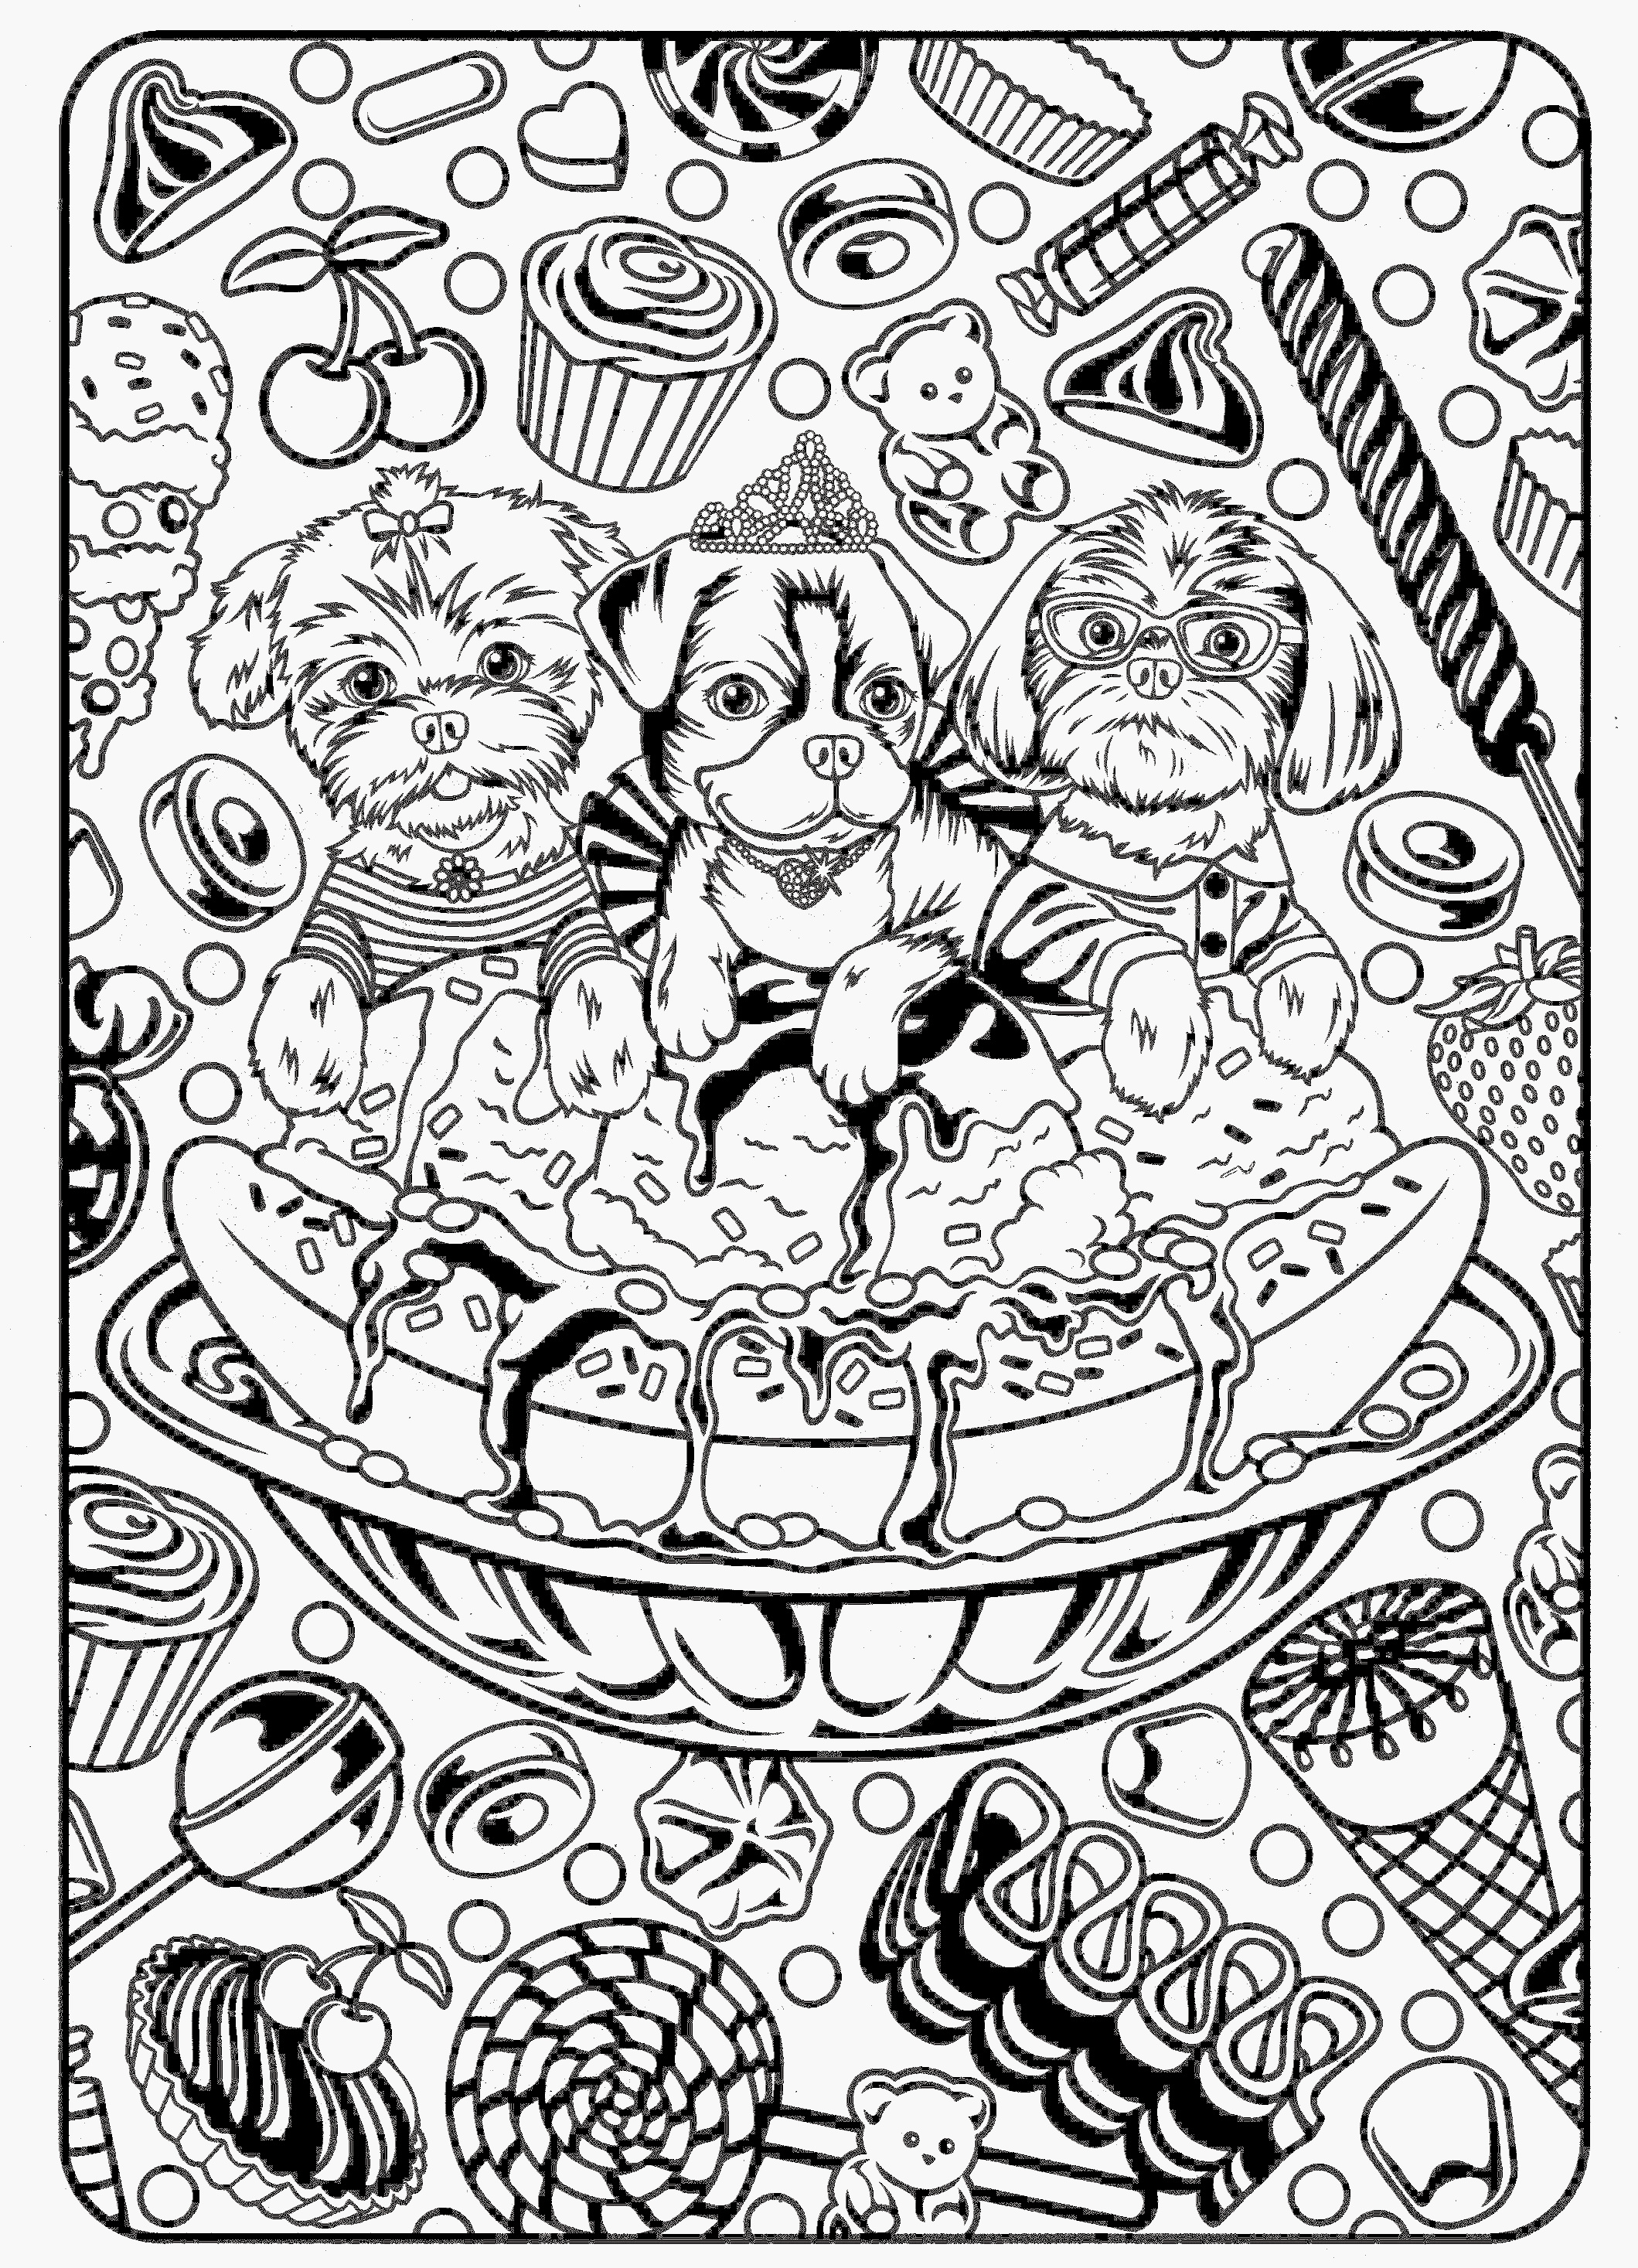 Fnaf Coloring Pages Online  to Print 2p - Free Download